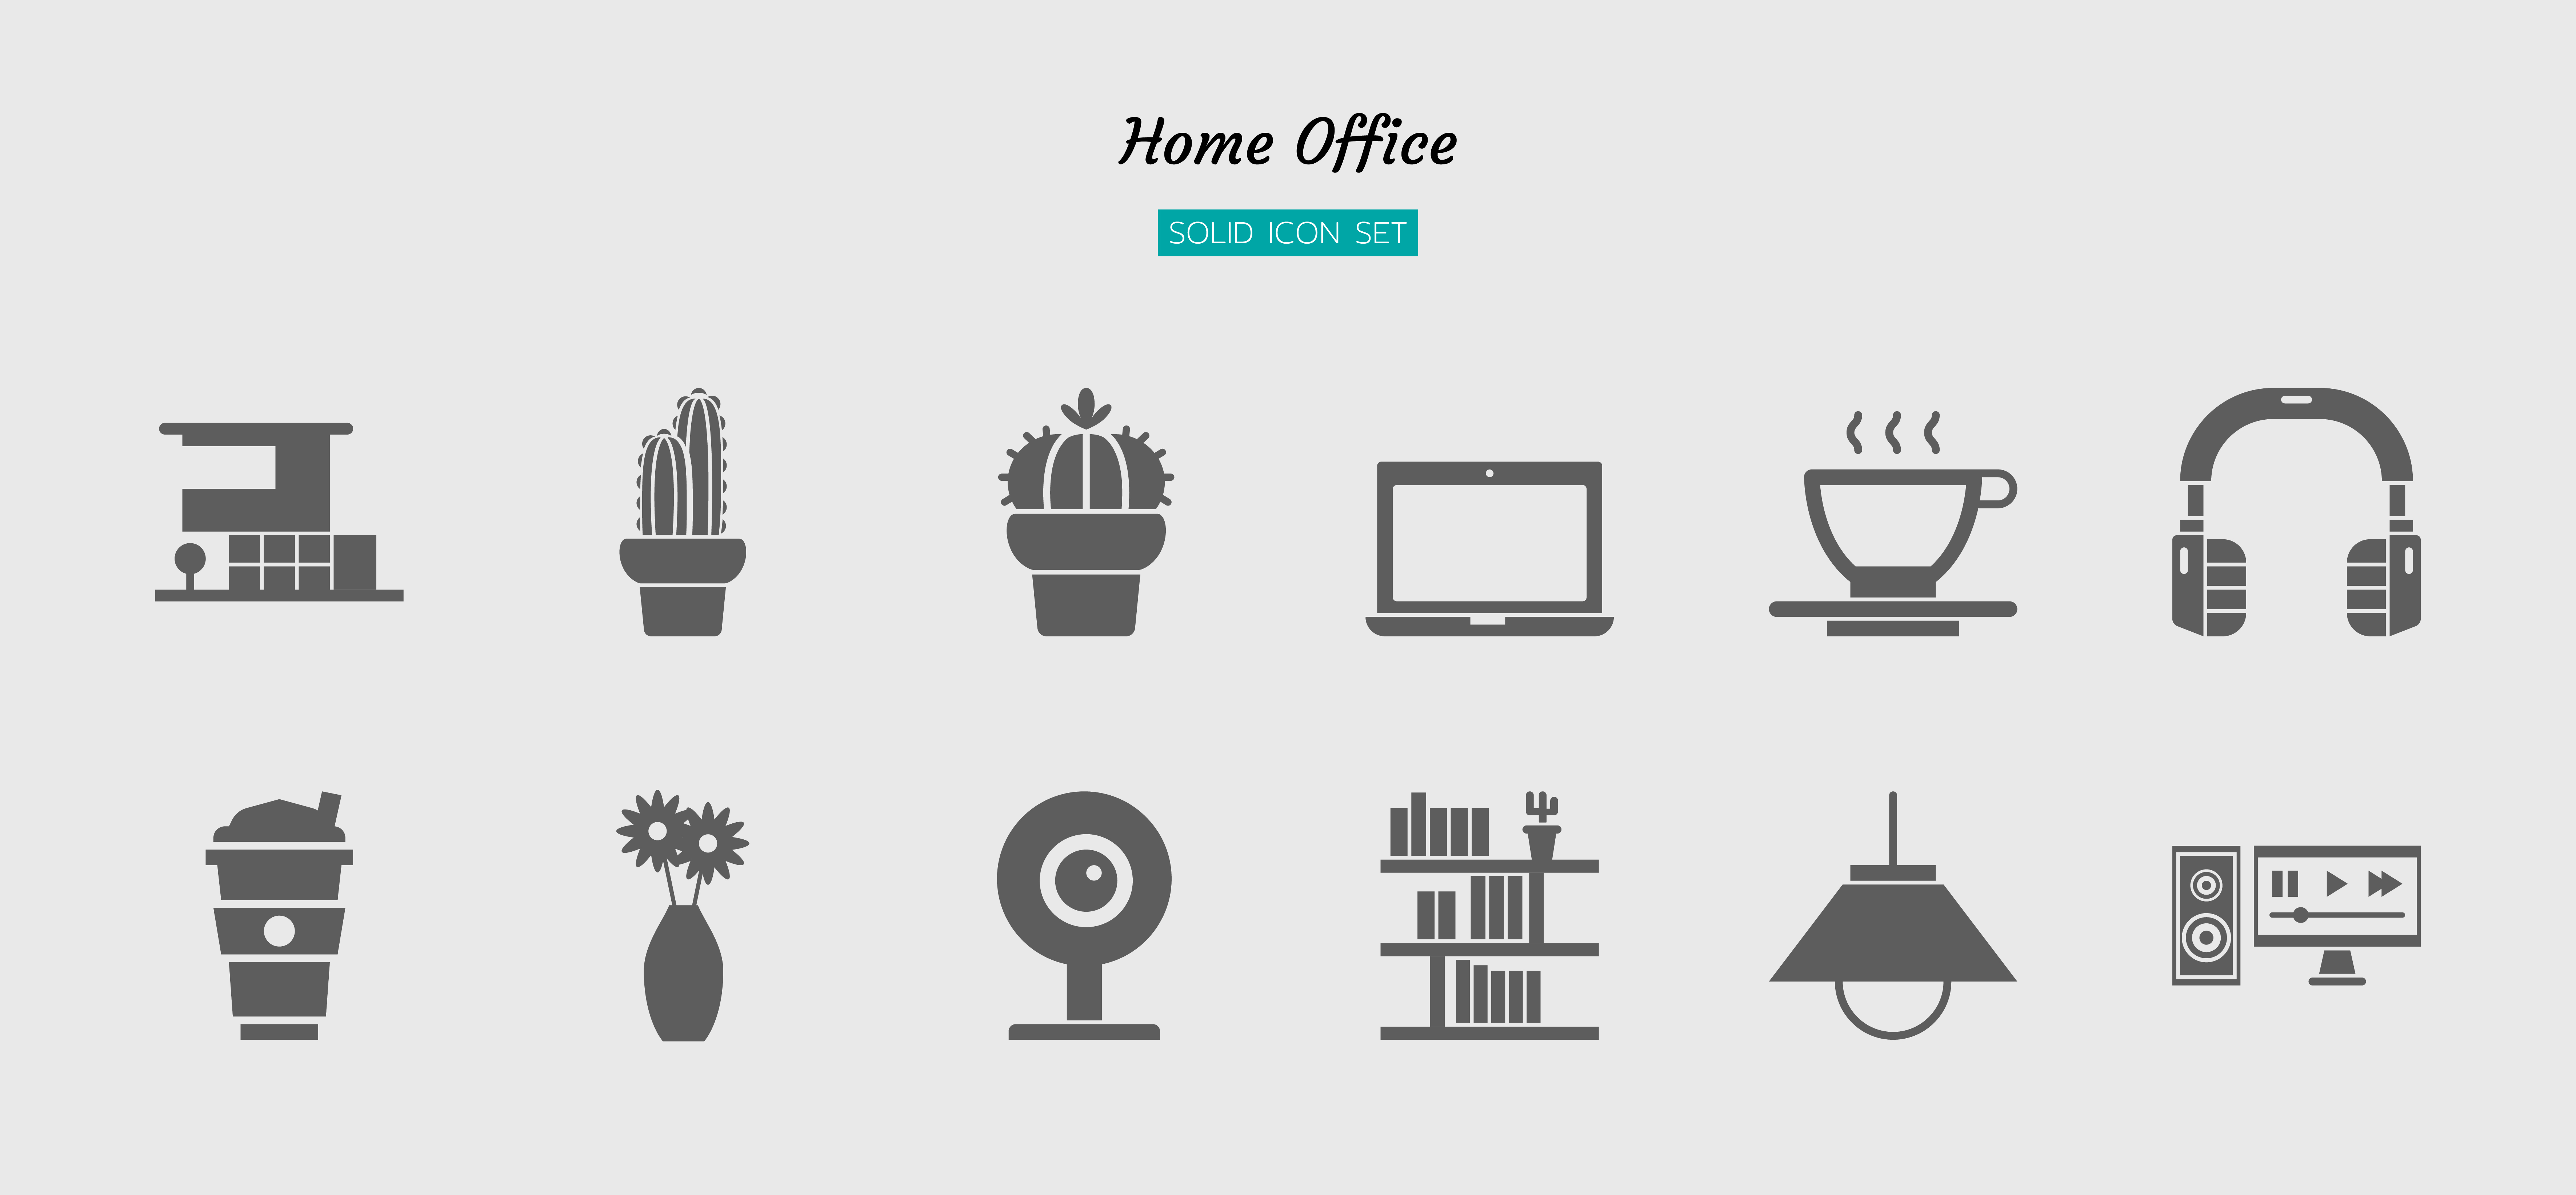 Solid gray home office icon symbol set vector